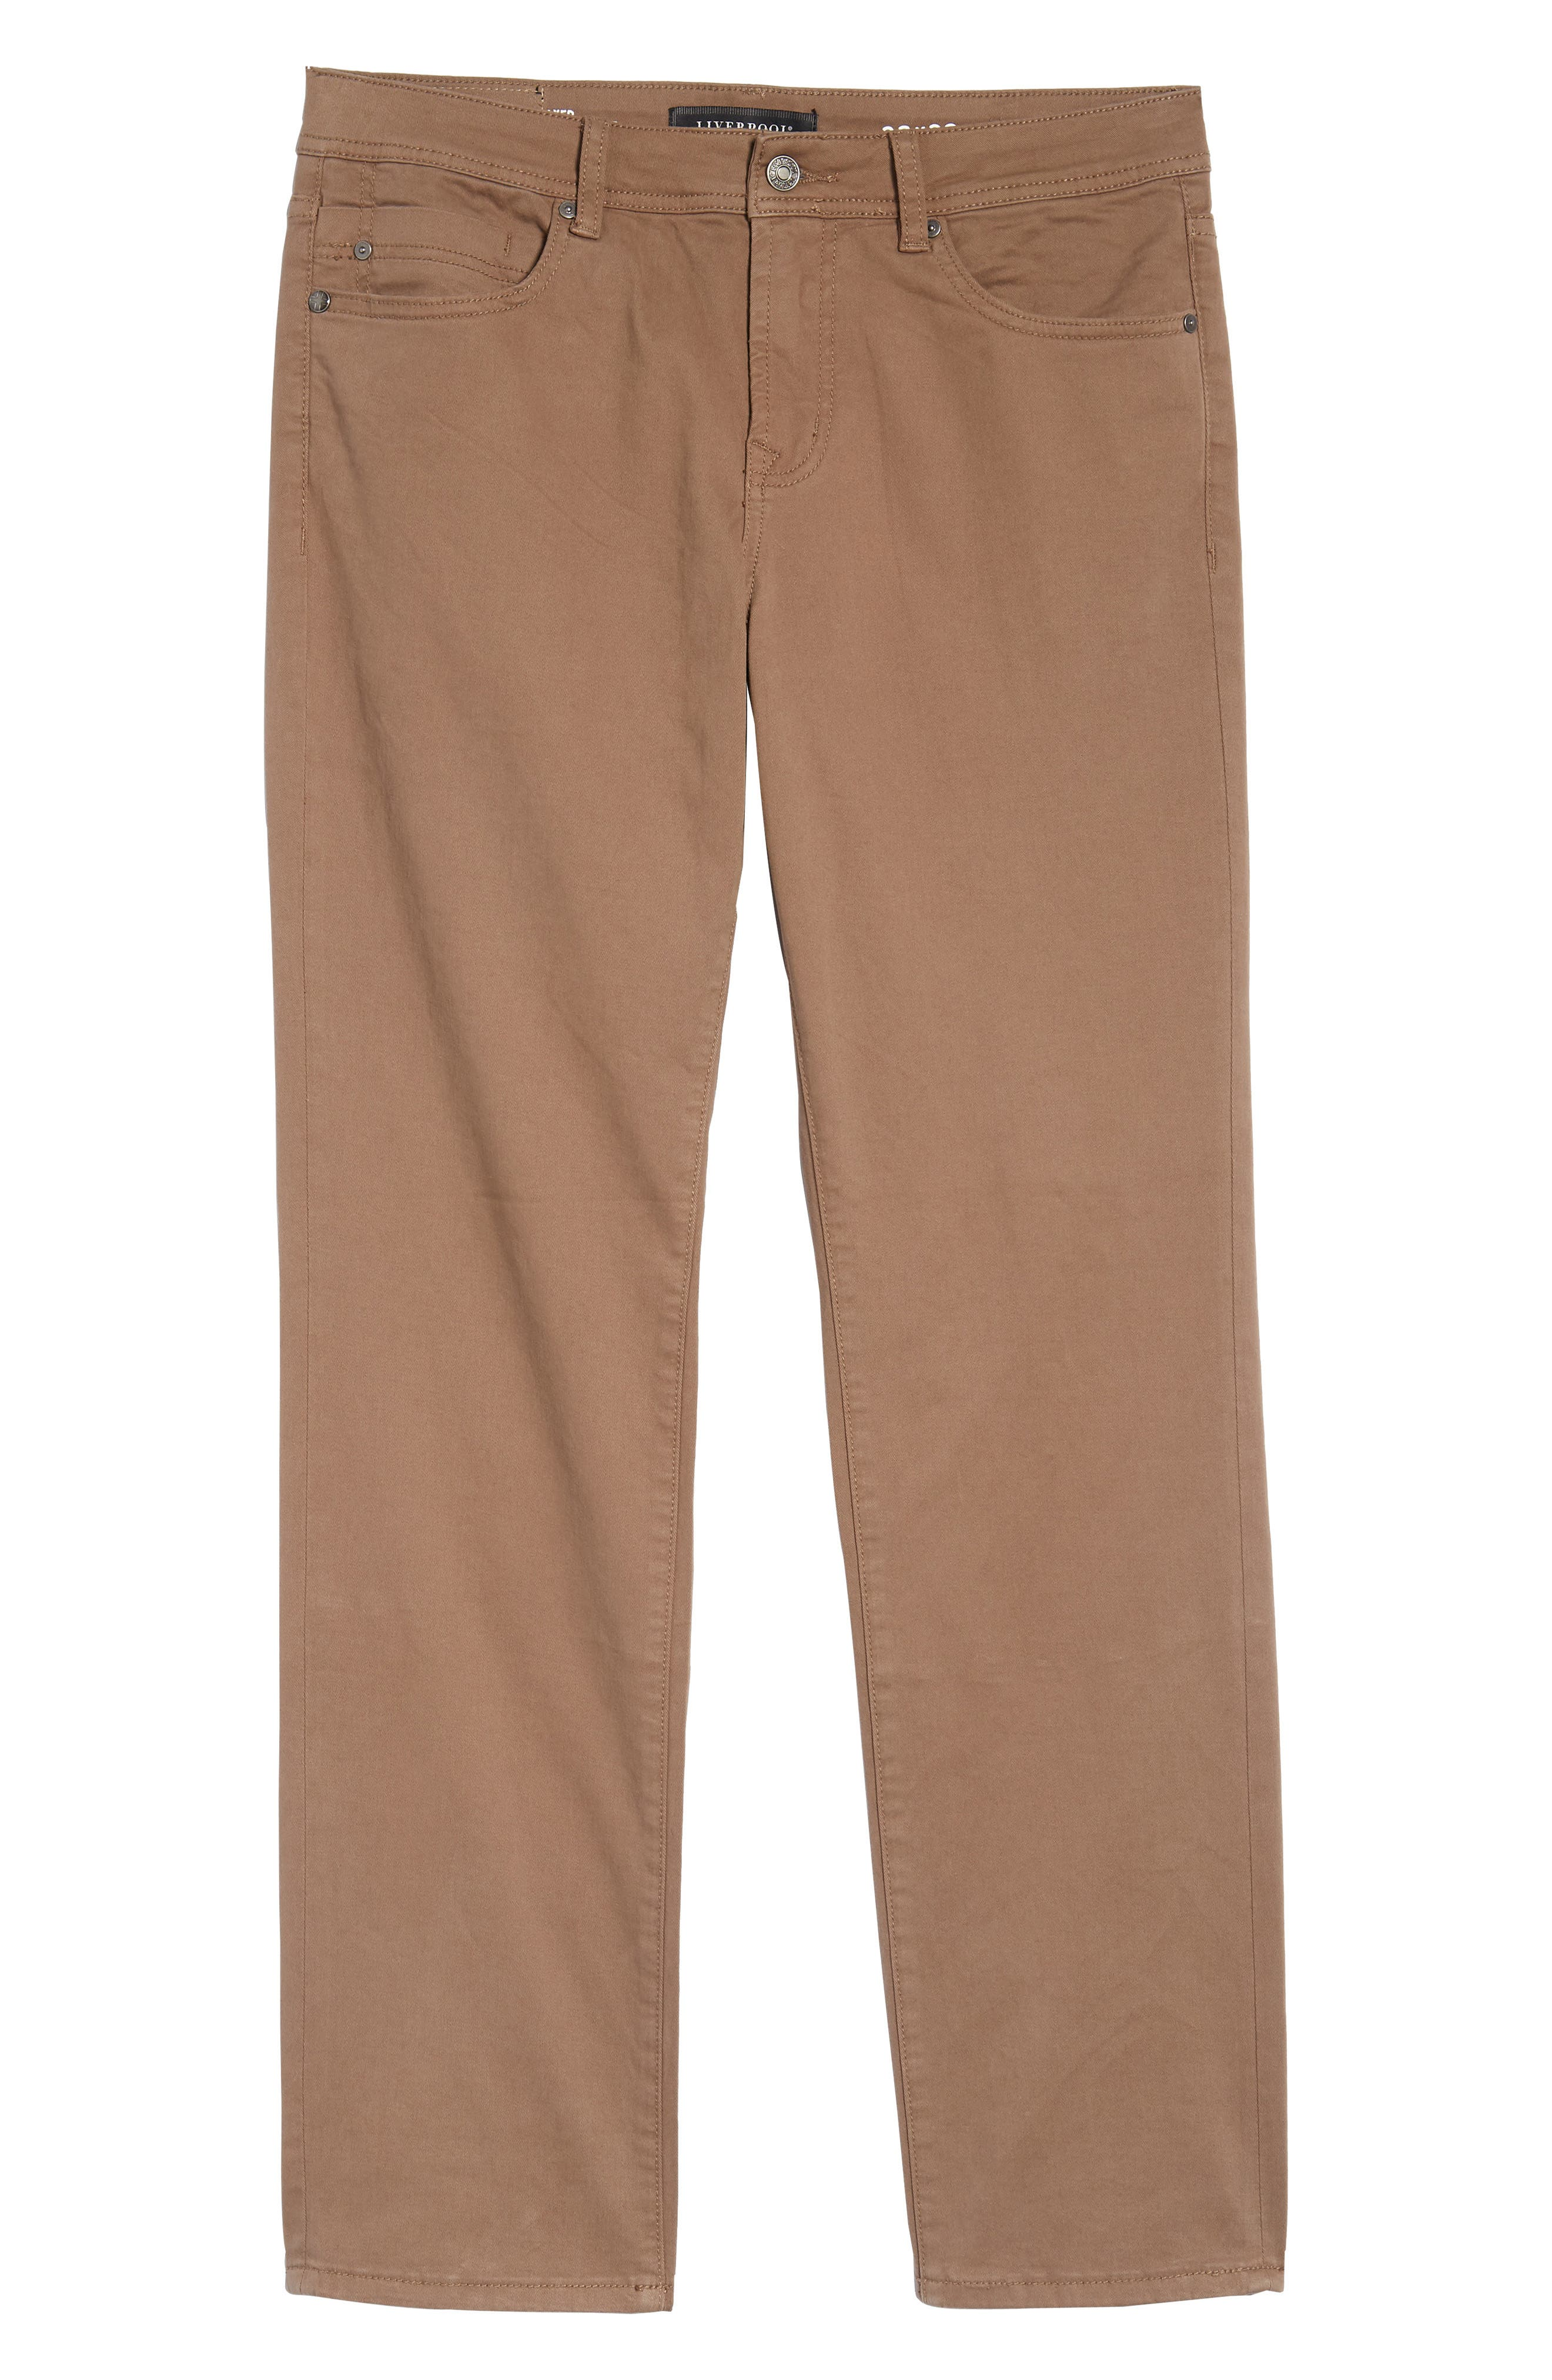 Jeans Co. Regent Relaxed Fit Straight Leg Jeans,                             Alternate thumbnail 6, color,                             CUB